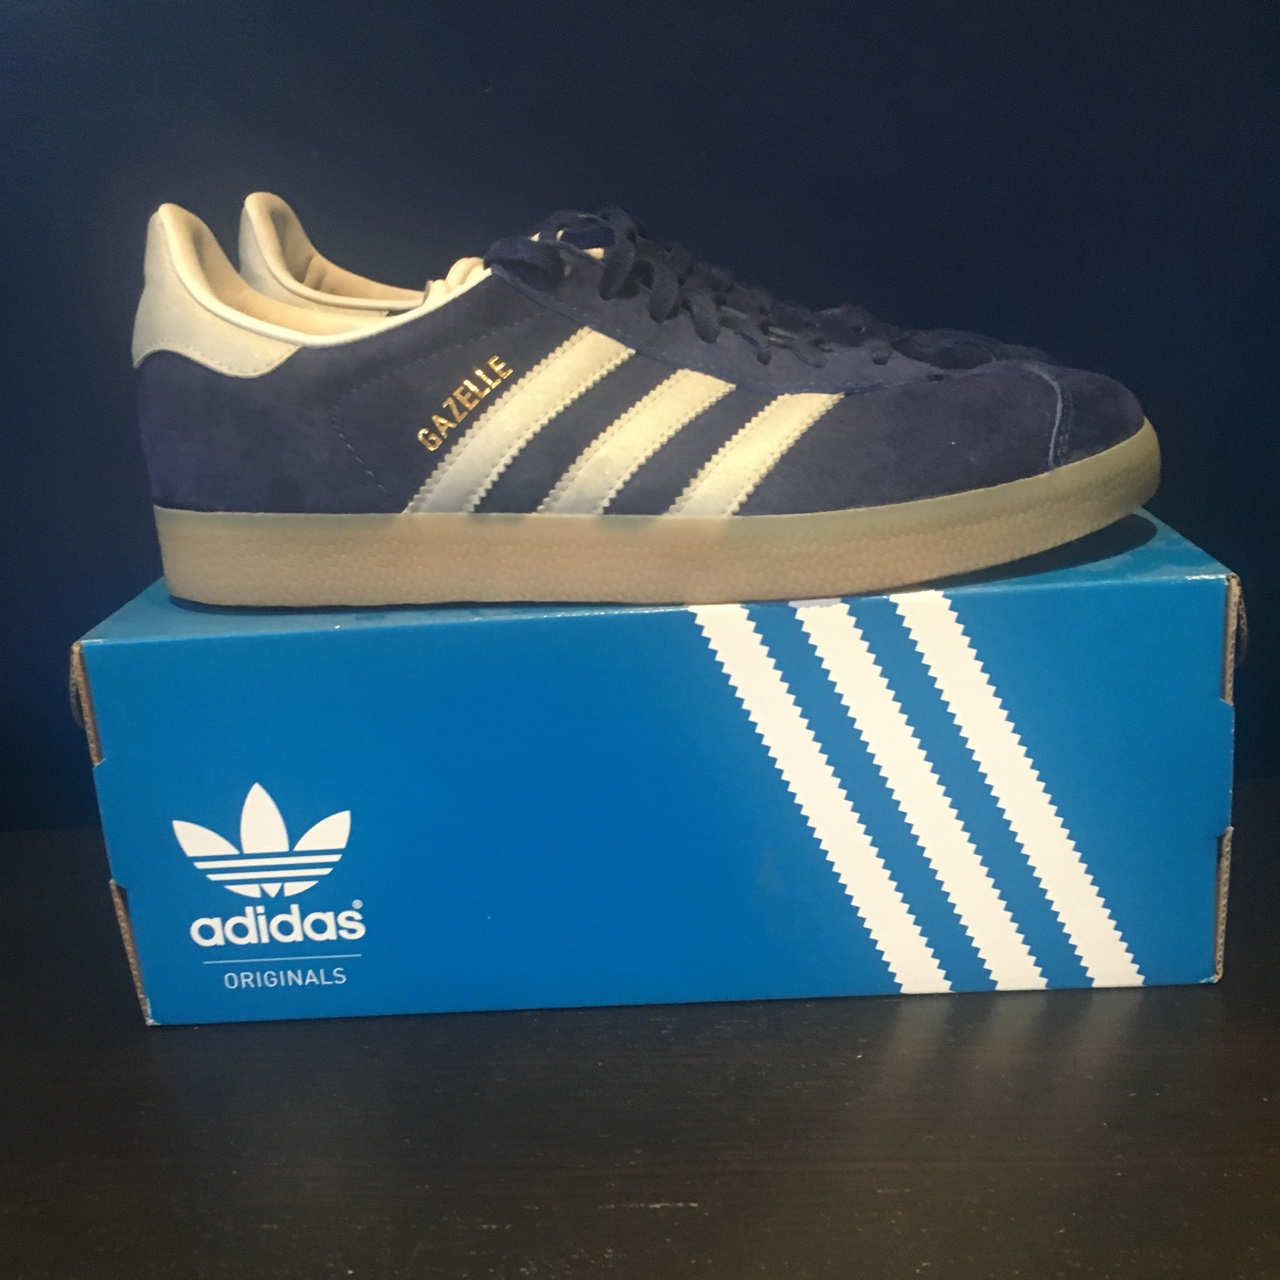 Adidas Gazelle navy cw. 1010 condition. RRP £80 as